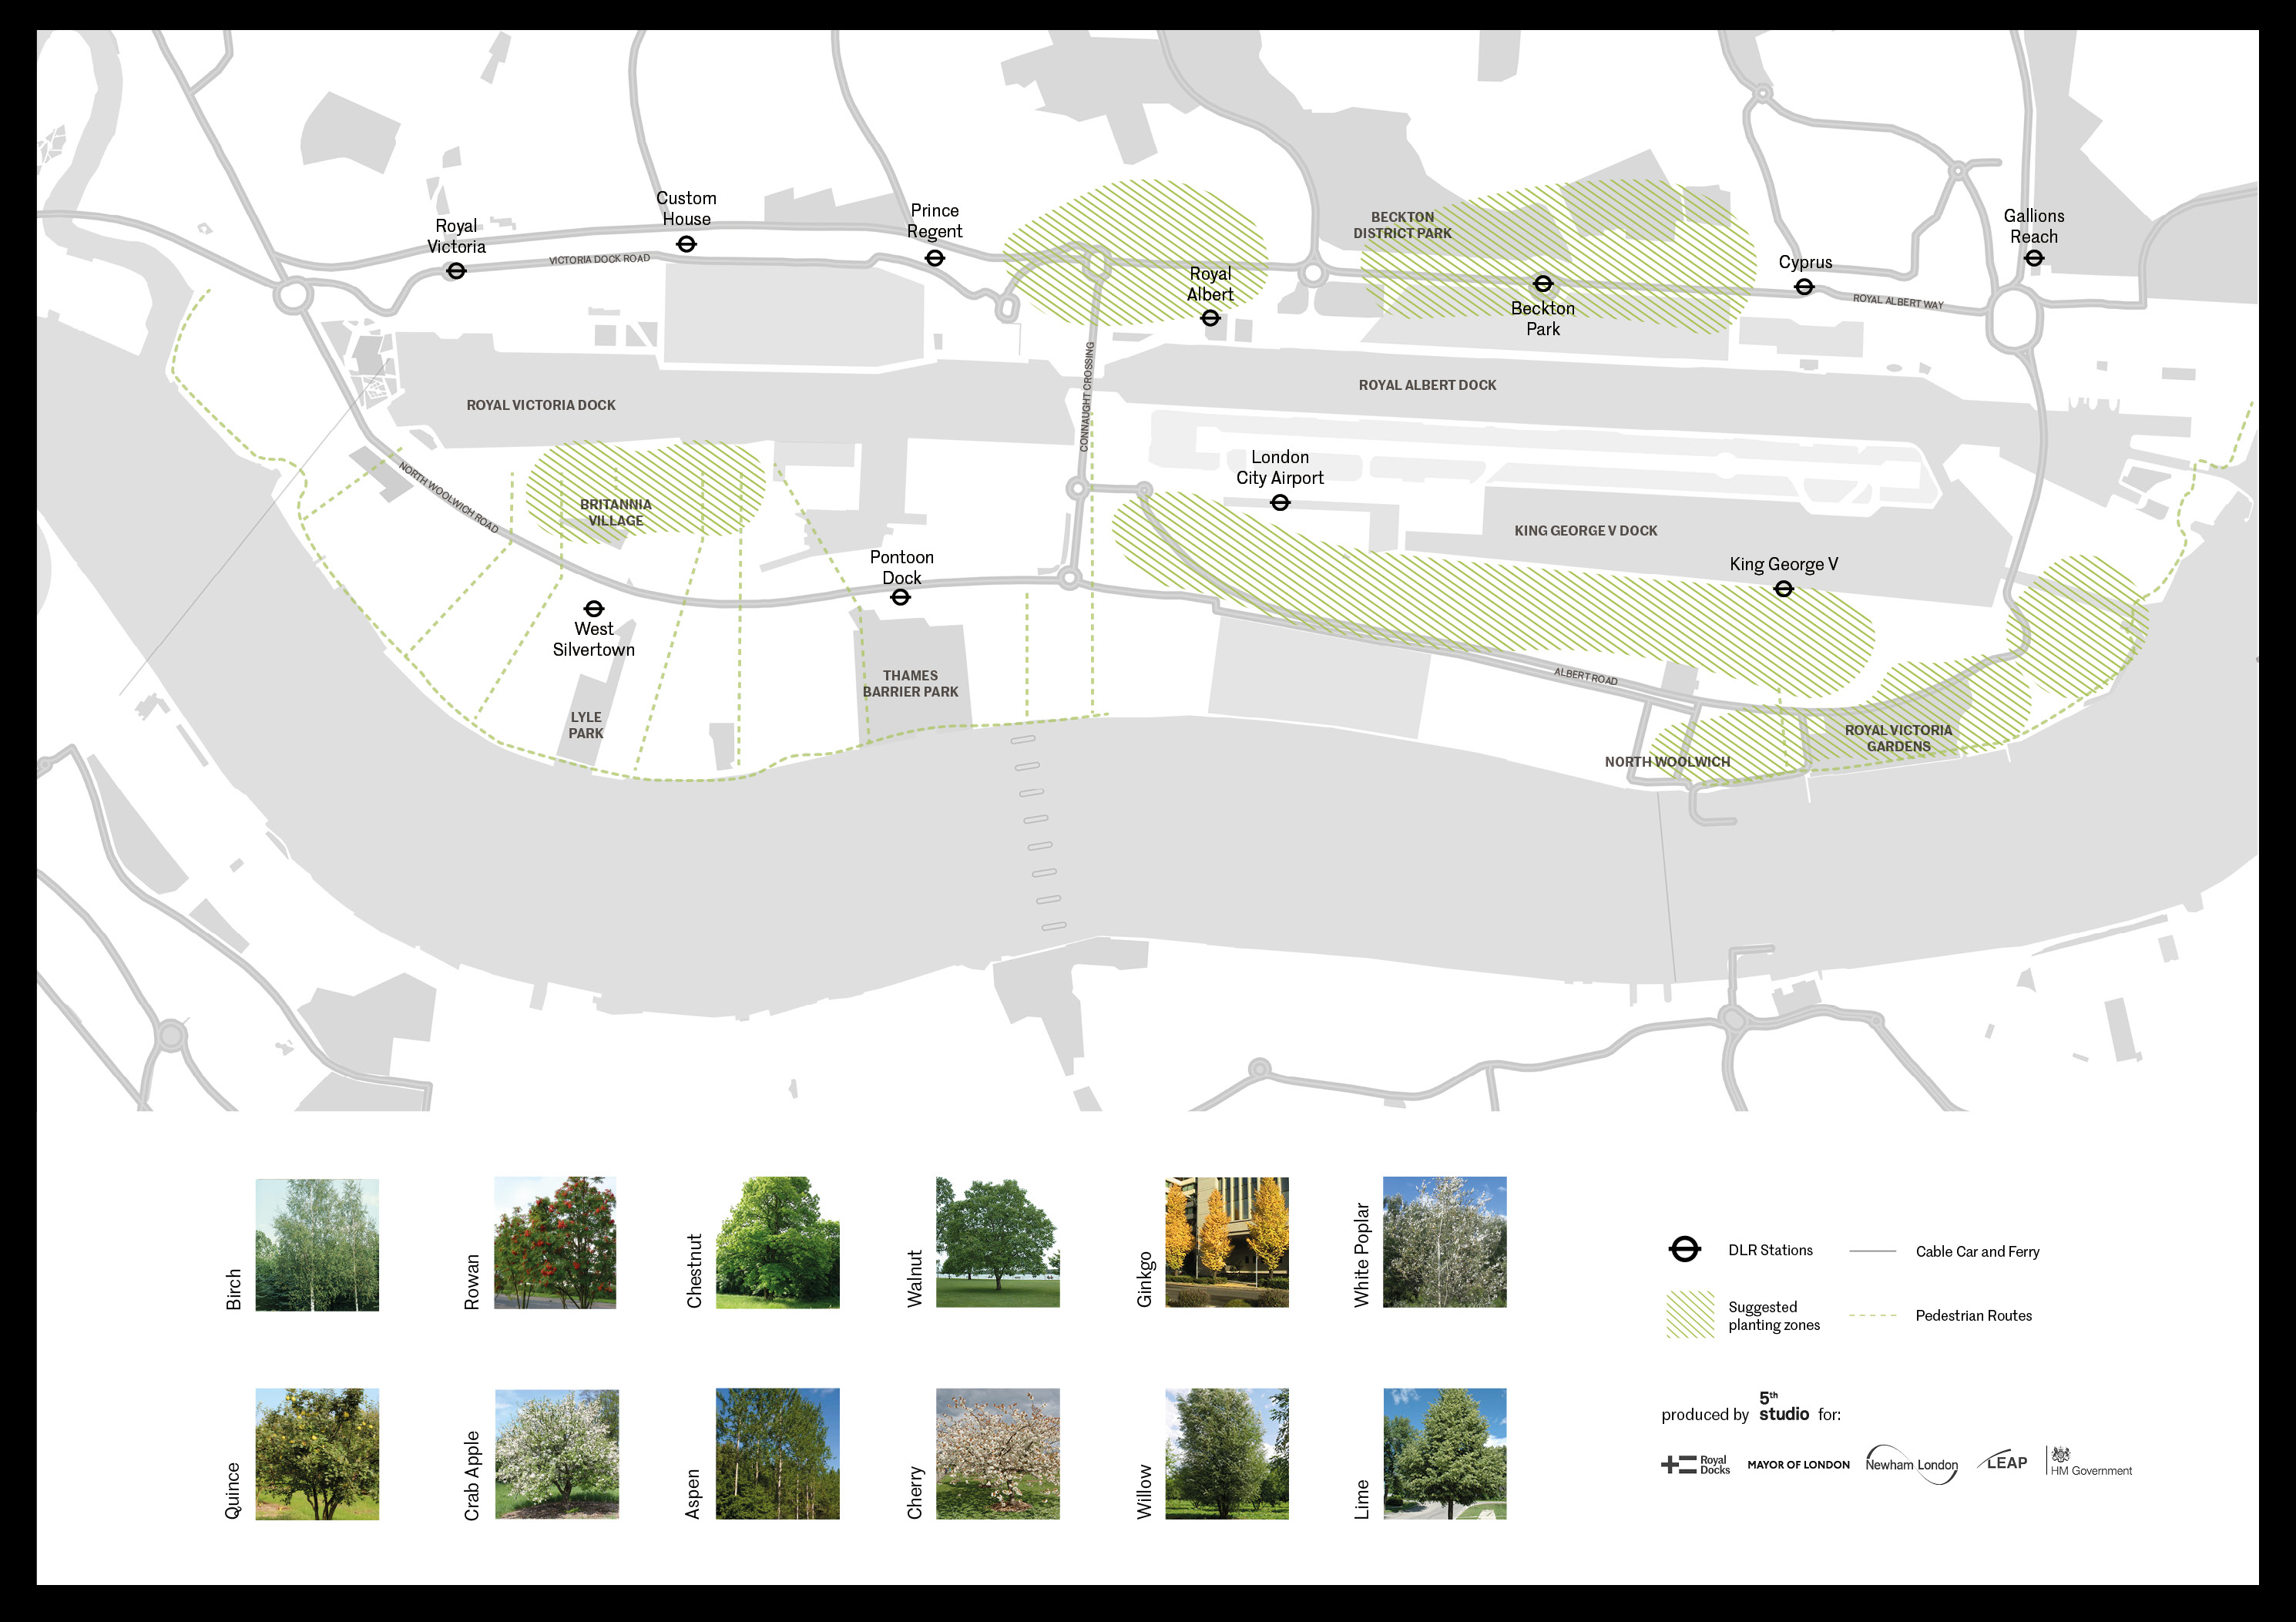 "<strong>The Tree Map</strong> - <a href=""https://royaldocks.london/media/ROY-BTF-Basemap-LR_x.jpg"" rel=""nofollow"" target=""_blank"">Click here for full size version (854kb)</a>"